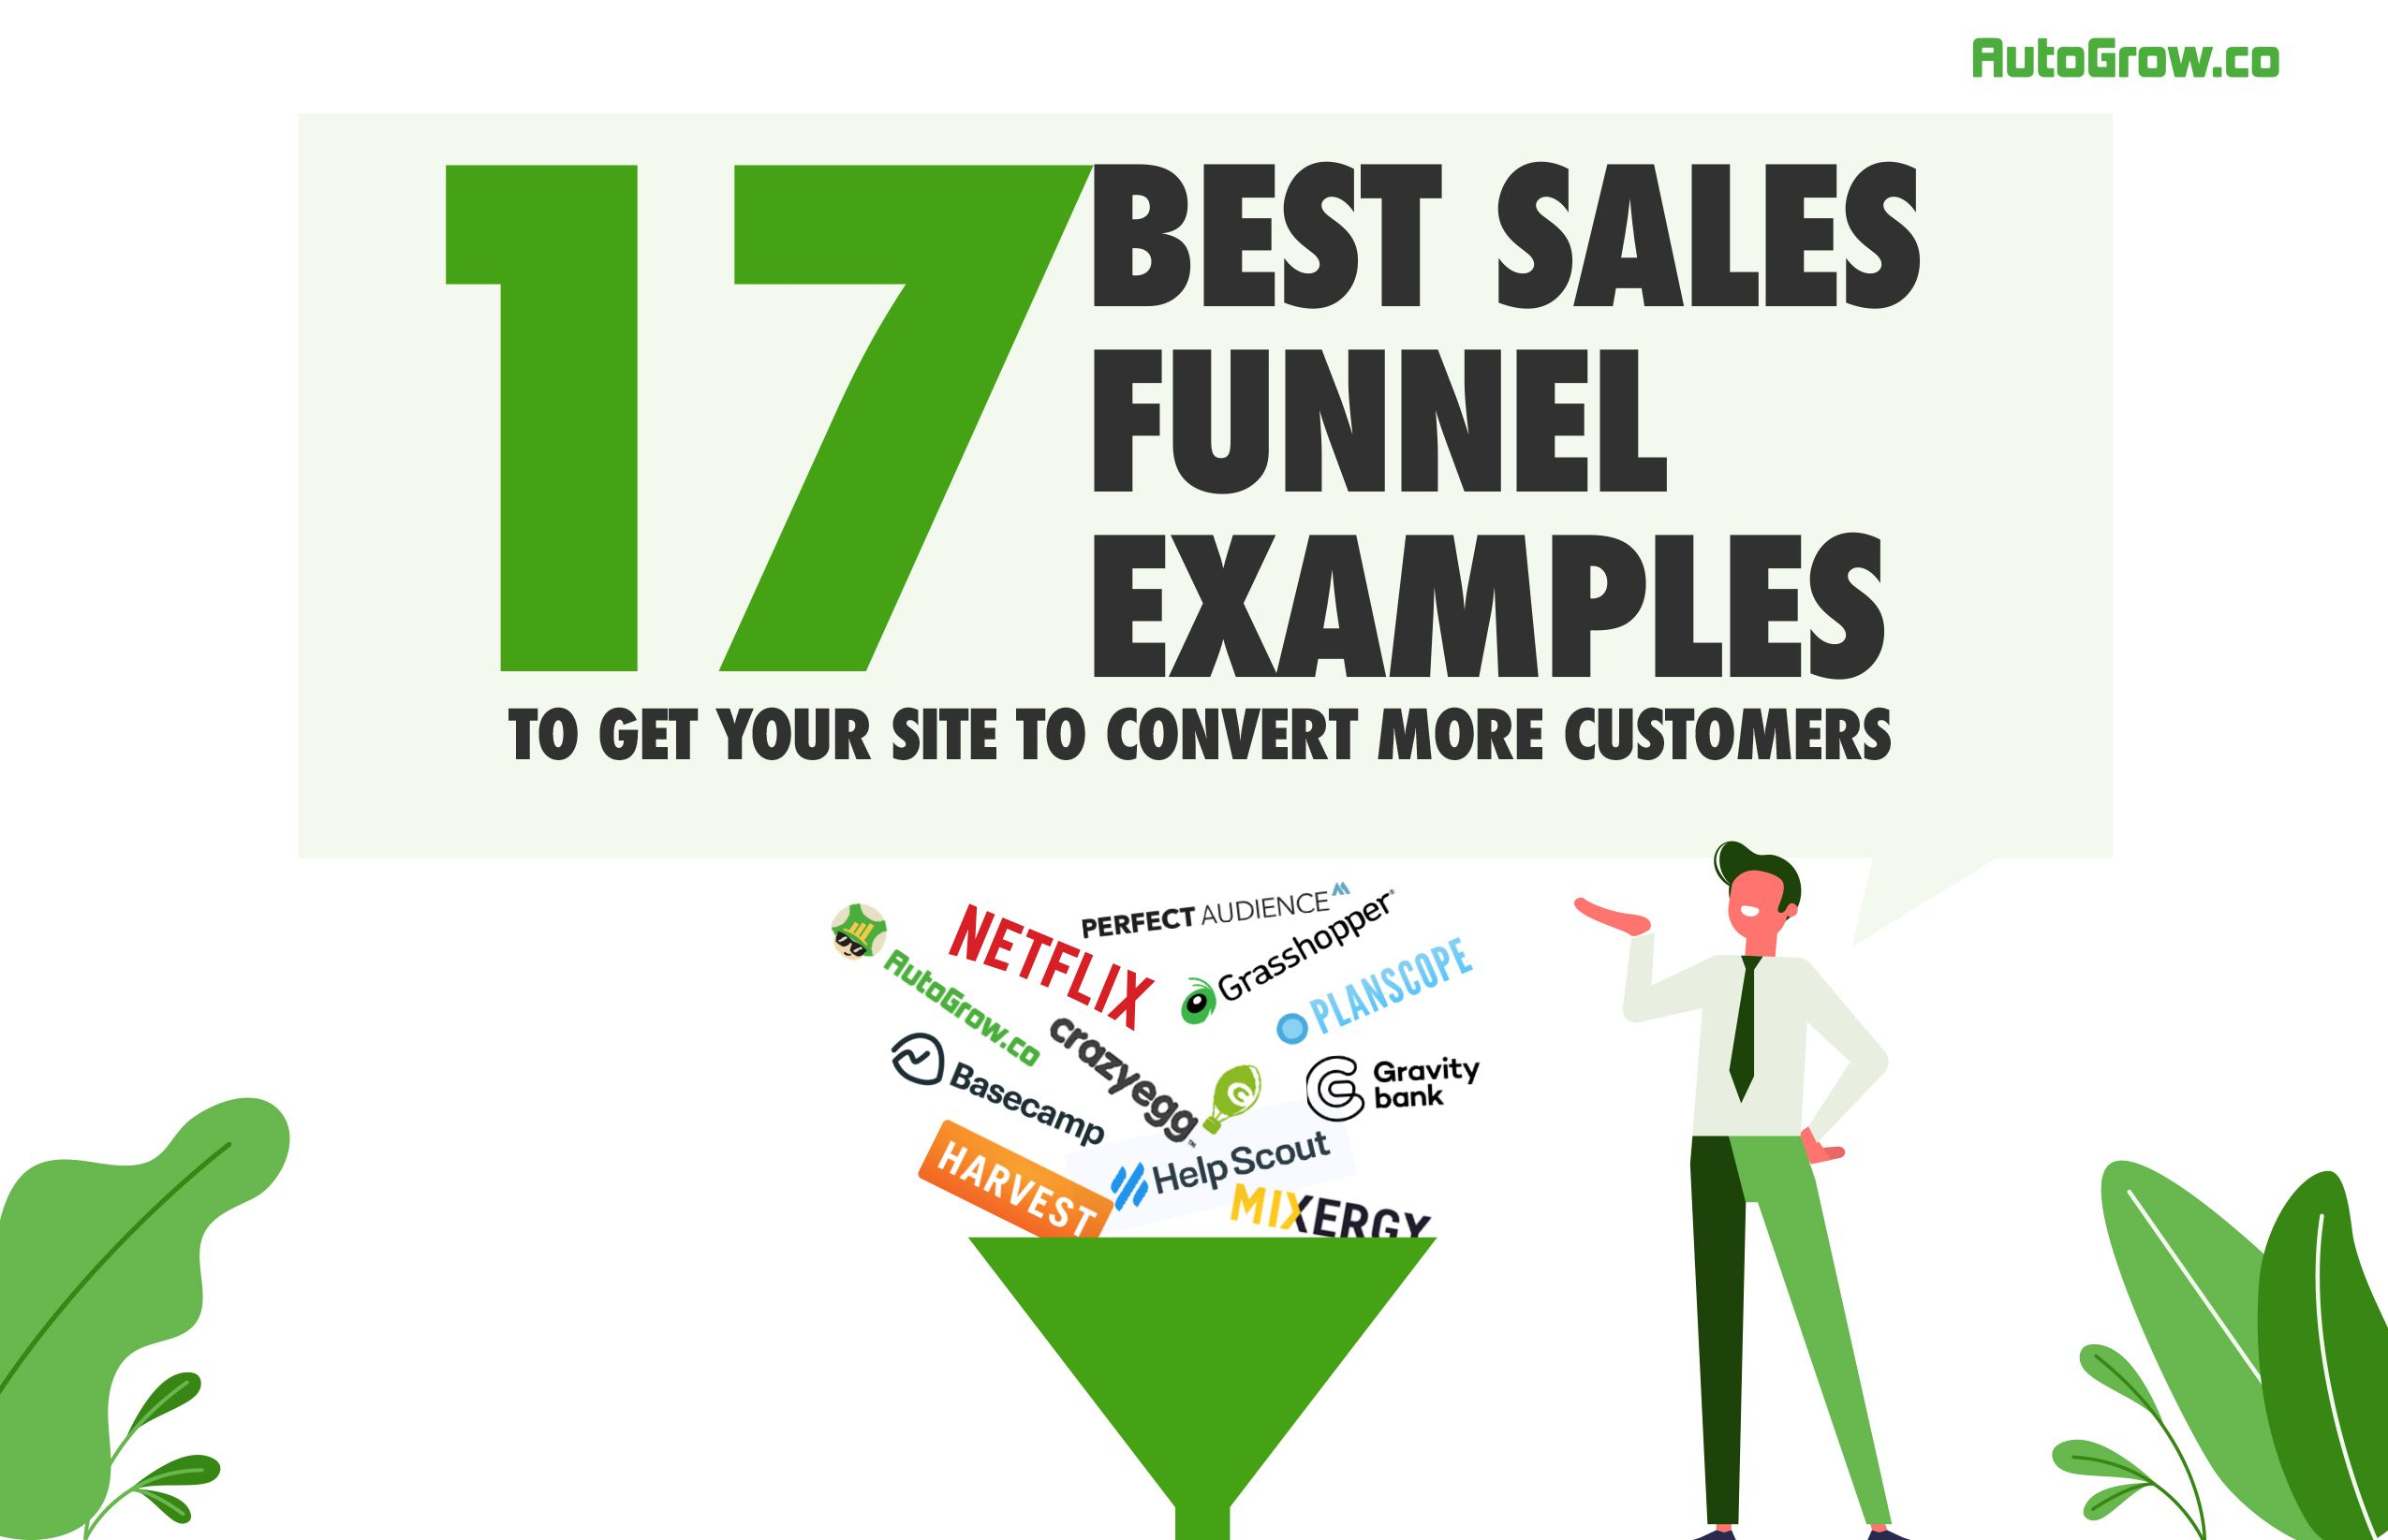 17 Best Sales Funnel Examples In 2019 To Help You Convert